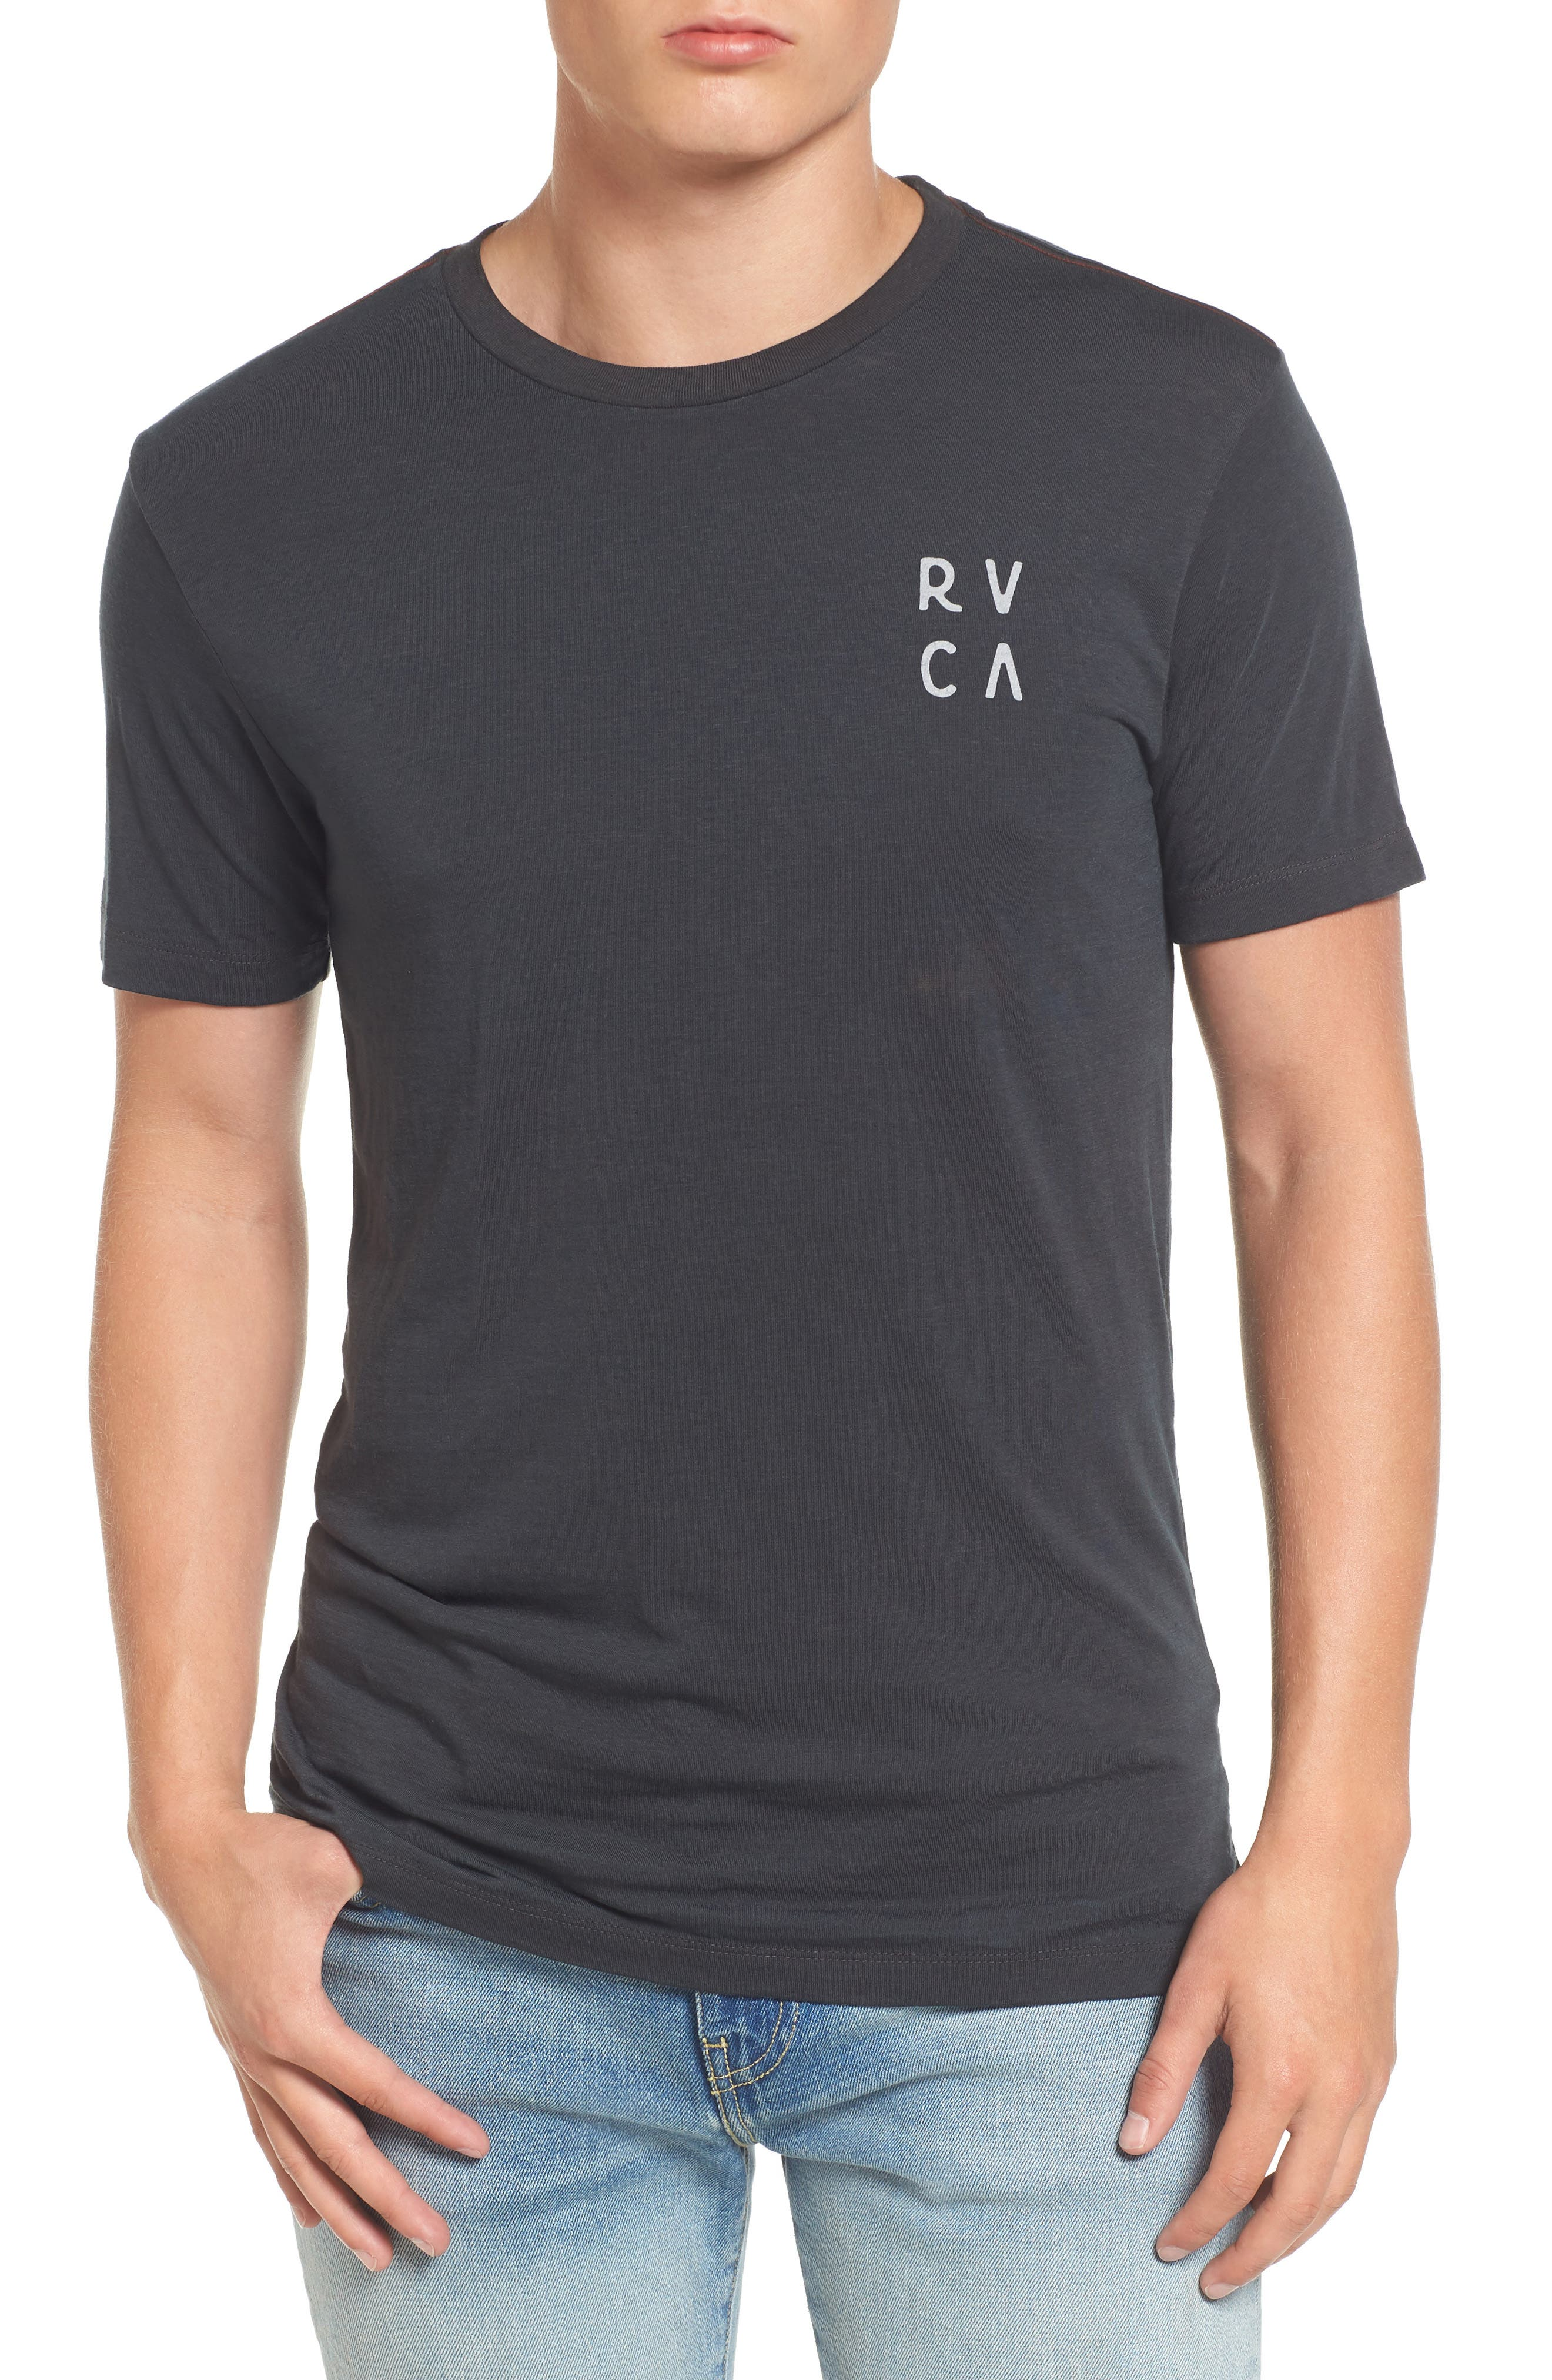 Main Image - RVCA Opposing Moons Graphic Burnout T-Shirt